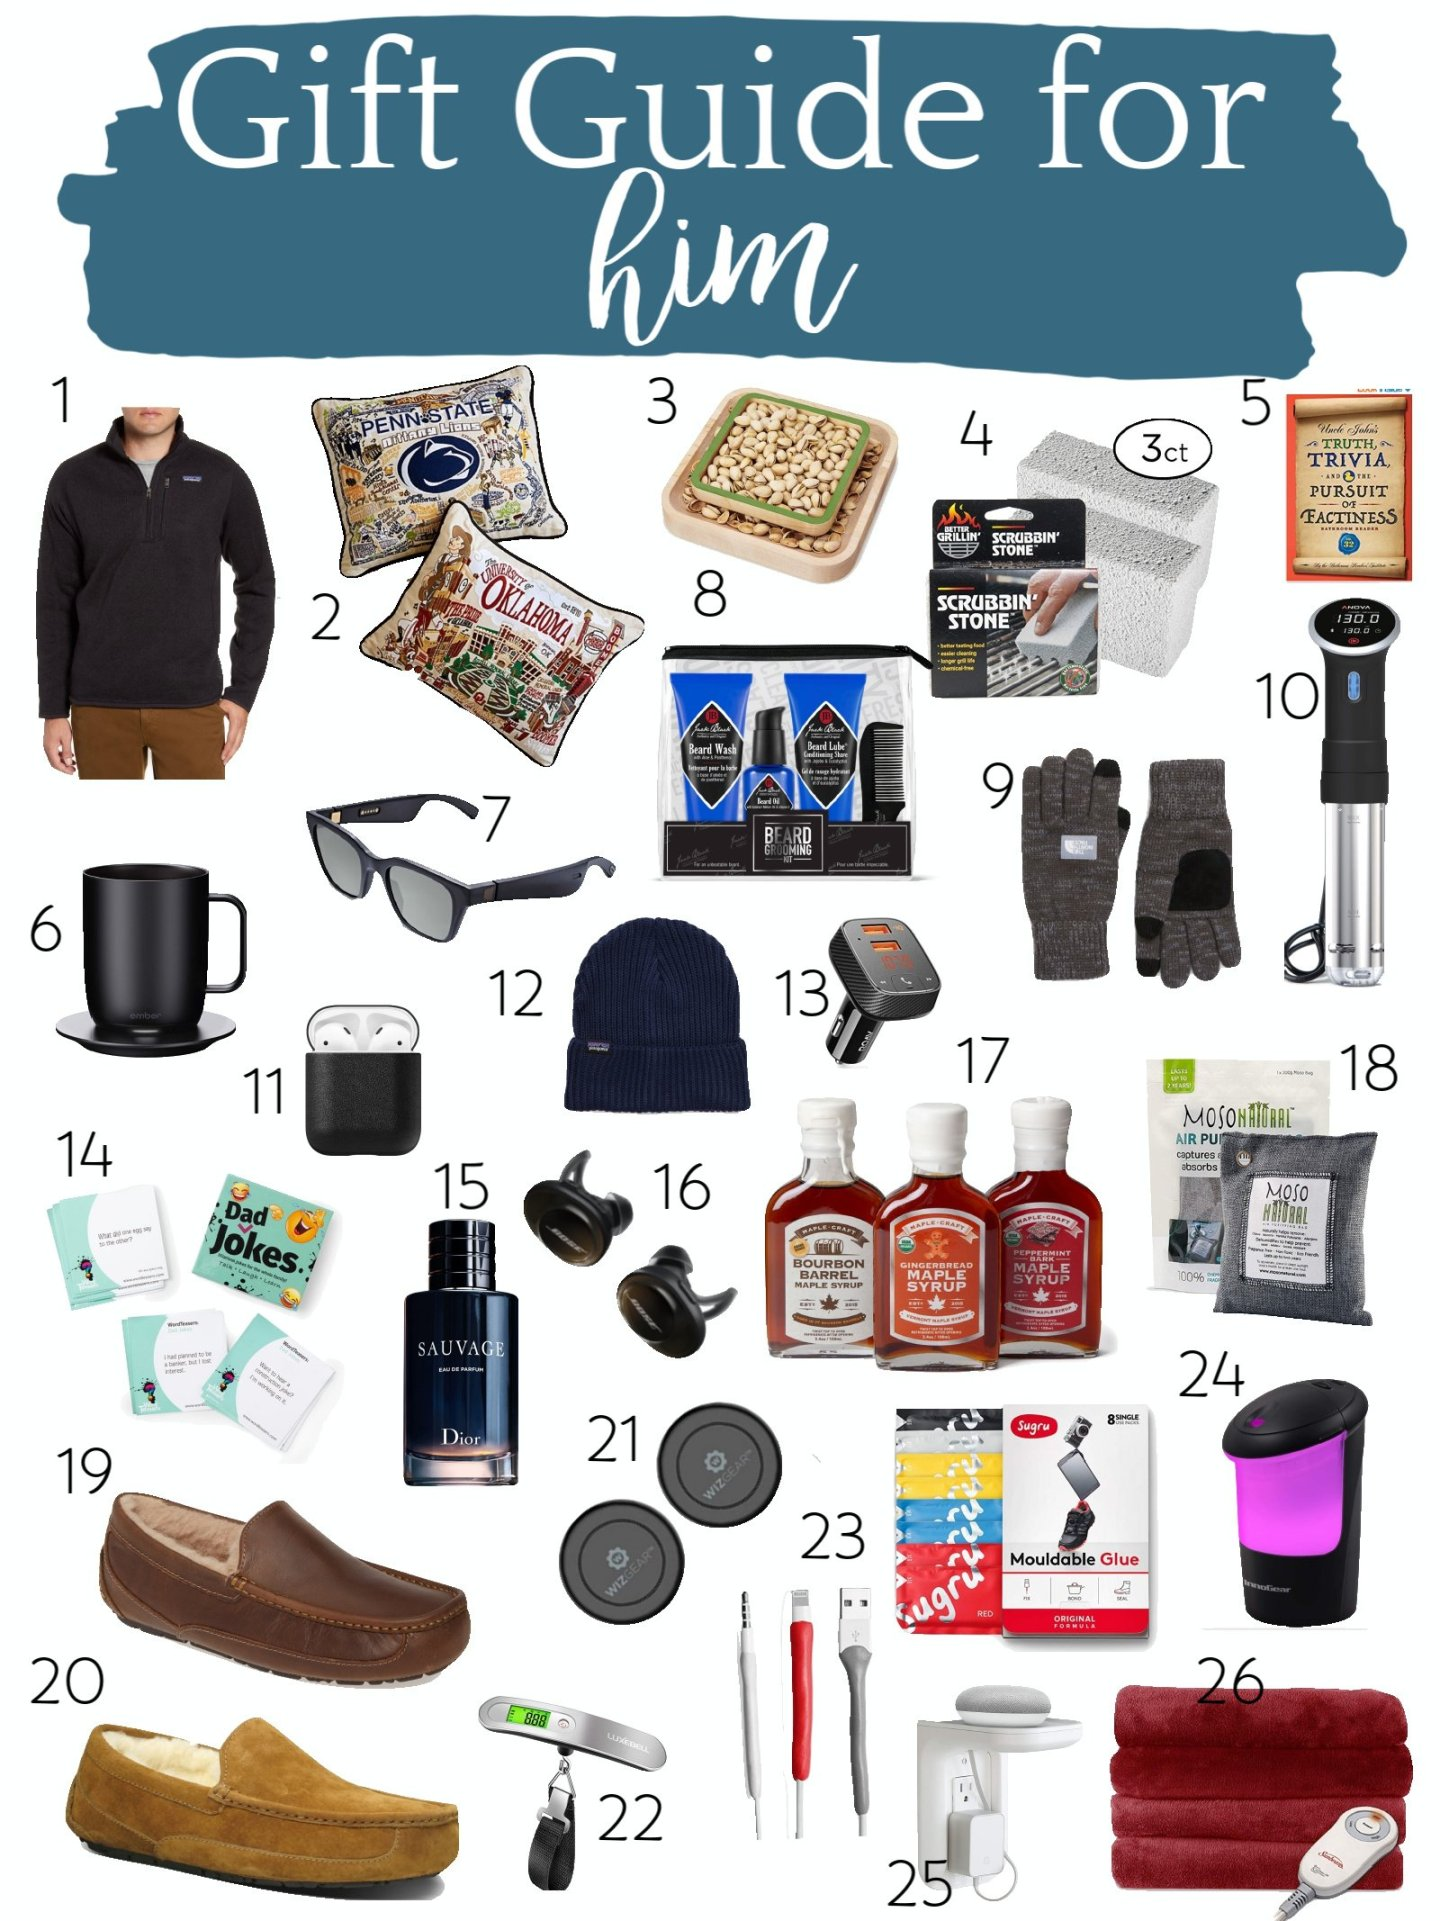 Gift Guide for Him with 26 Unique Ideas